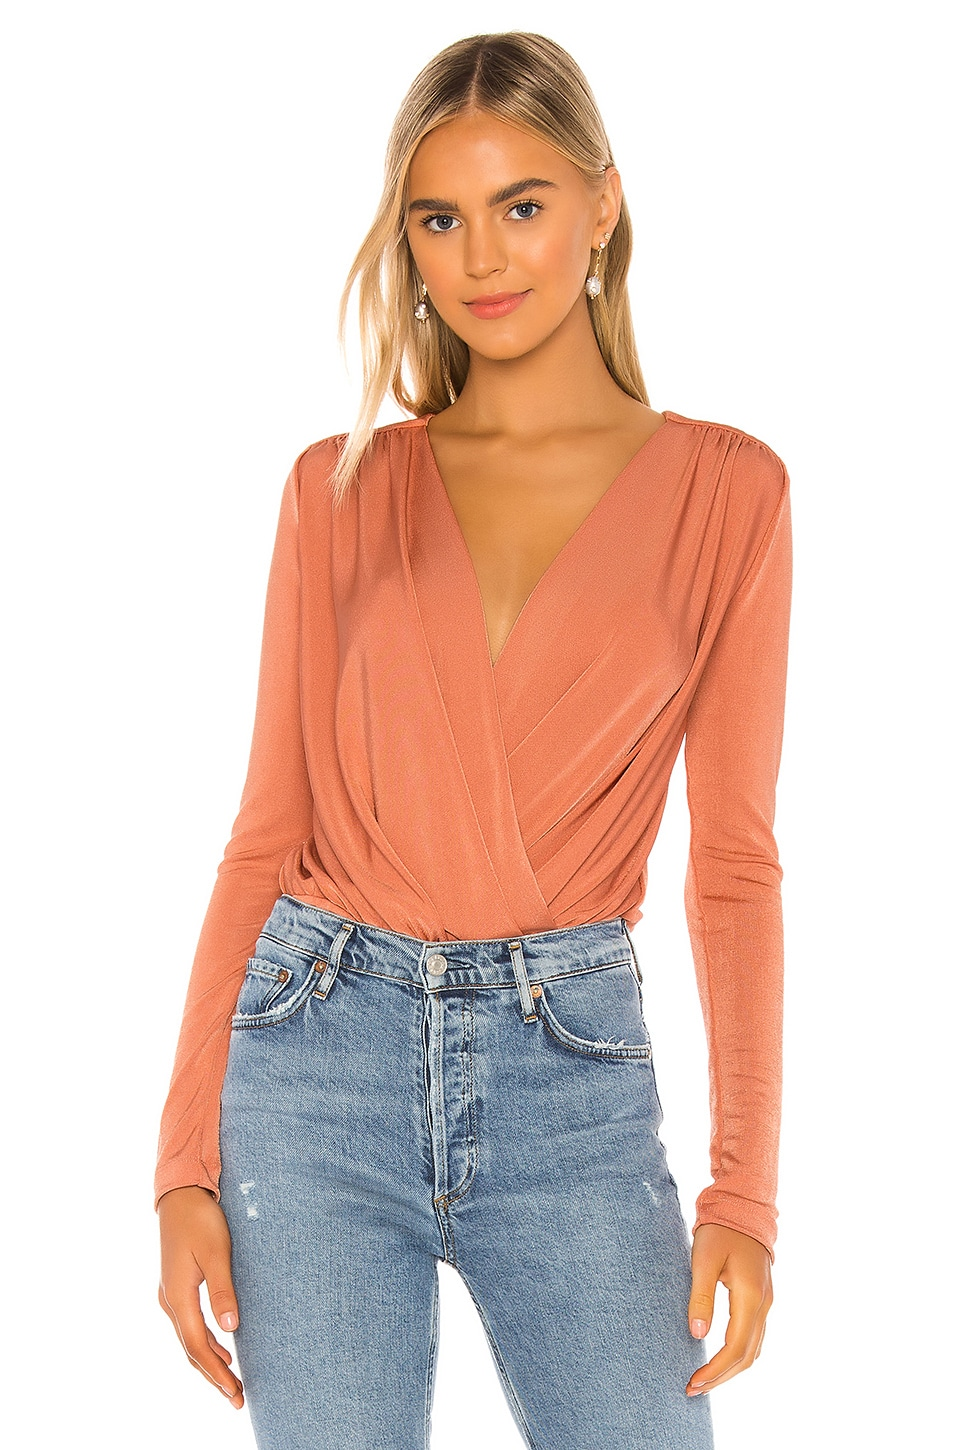 Turnt Bodysuit                     Free People 2